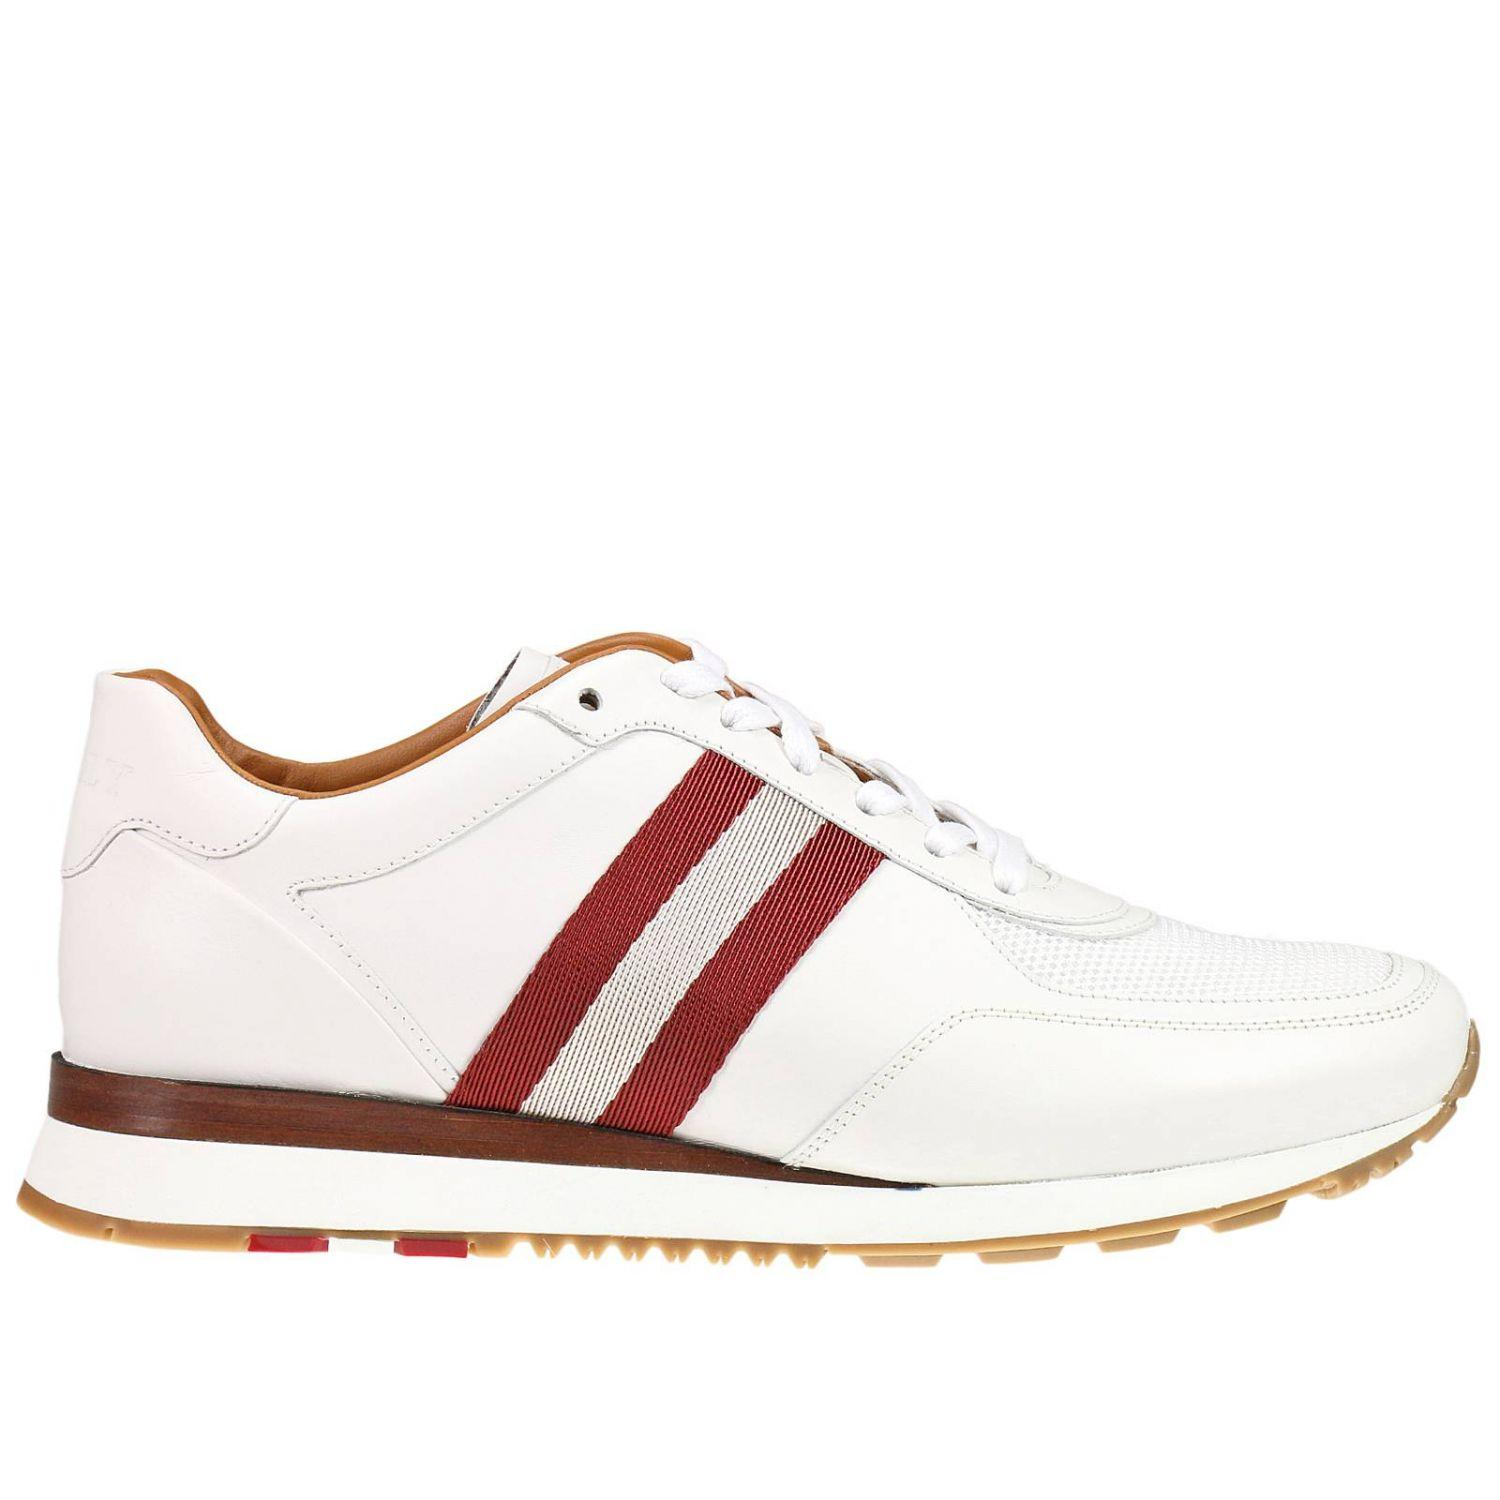 Bally Sneakers Shoes Men In White For Men